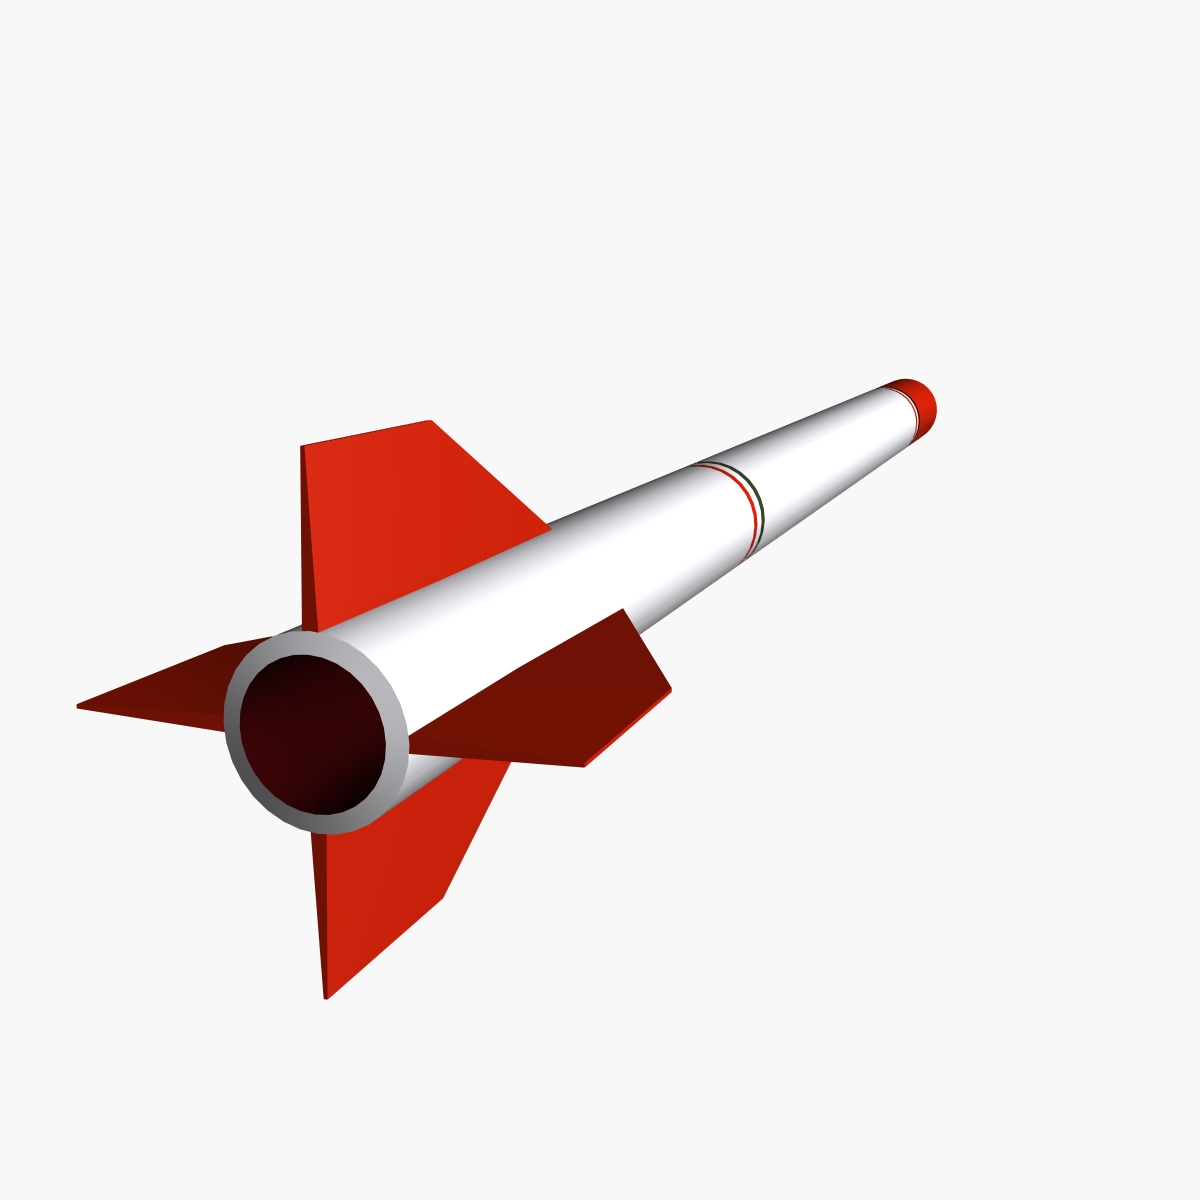 oghab rocket 3d model 3ds dxf fbx blend cob dae x  obj 205494